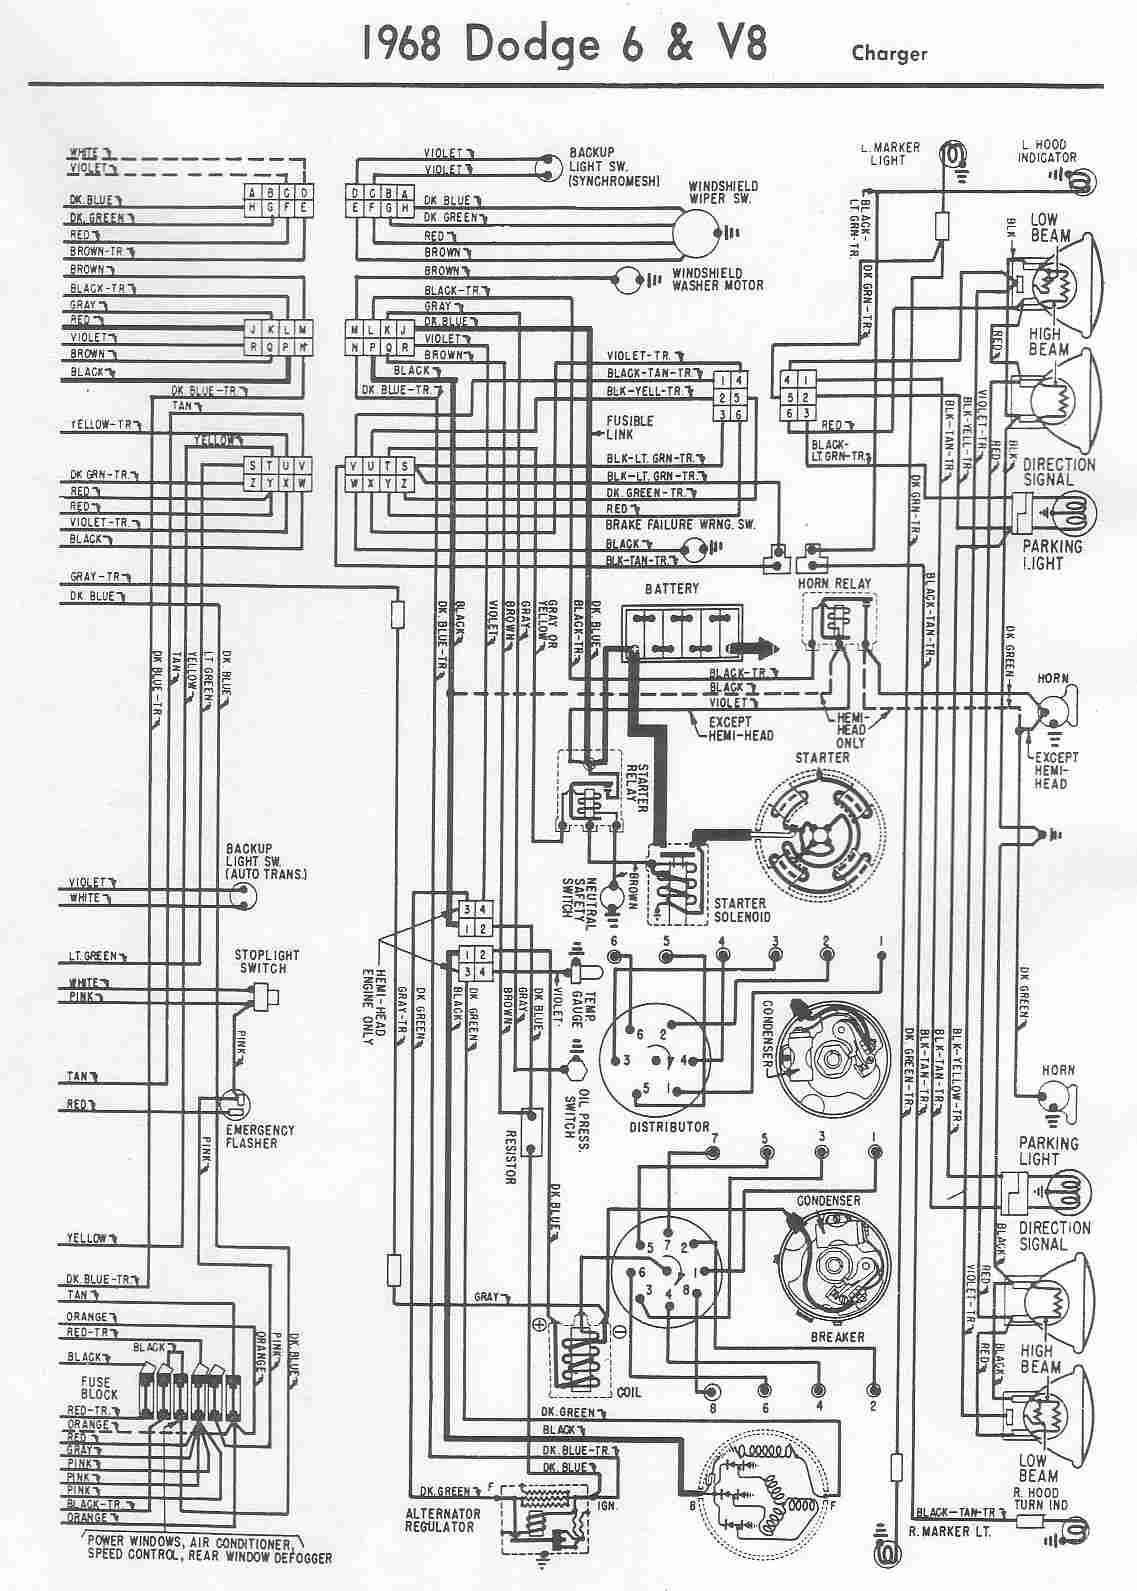 Dodge Wayfarer Wiring Diagram Detailed Schematics Diagram 1972 Chevy Truck  Carburetor 1972 Chevy Truck Wiring Diagram Pdf